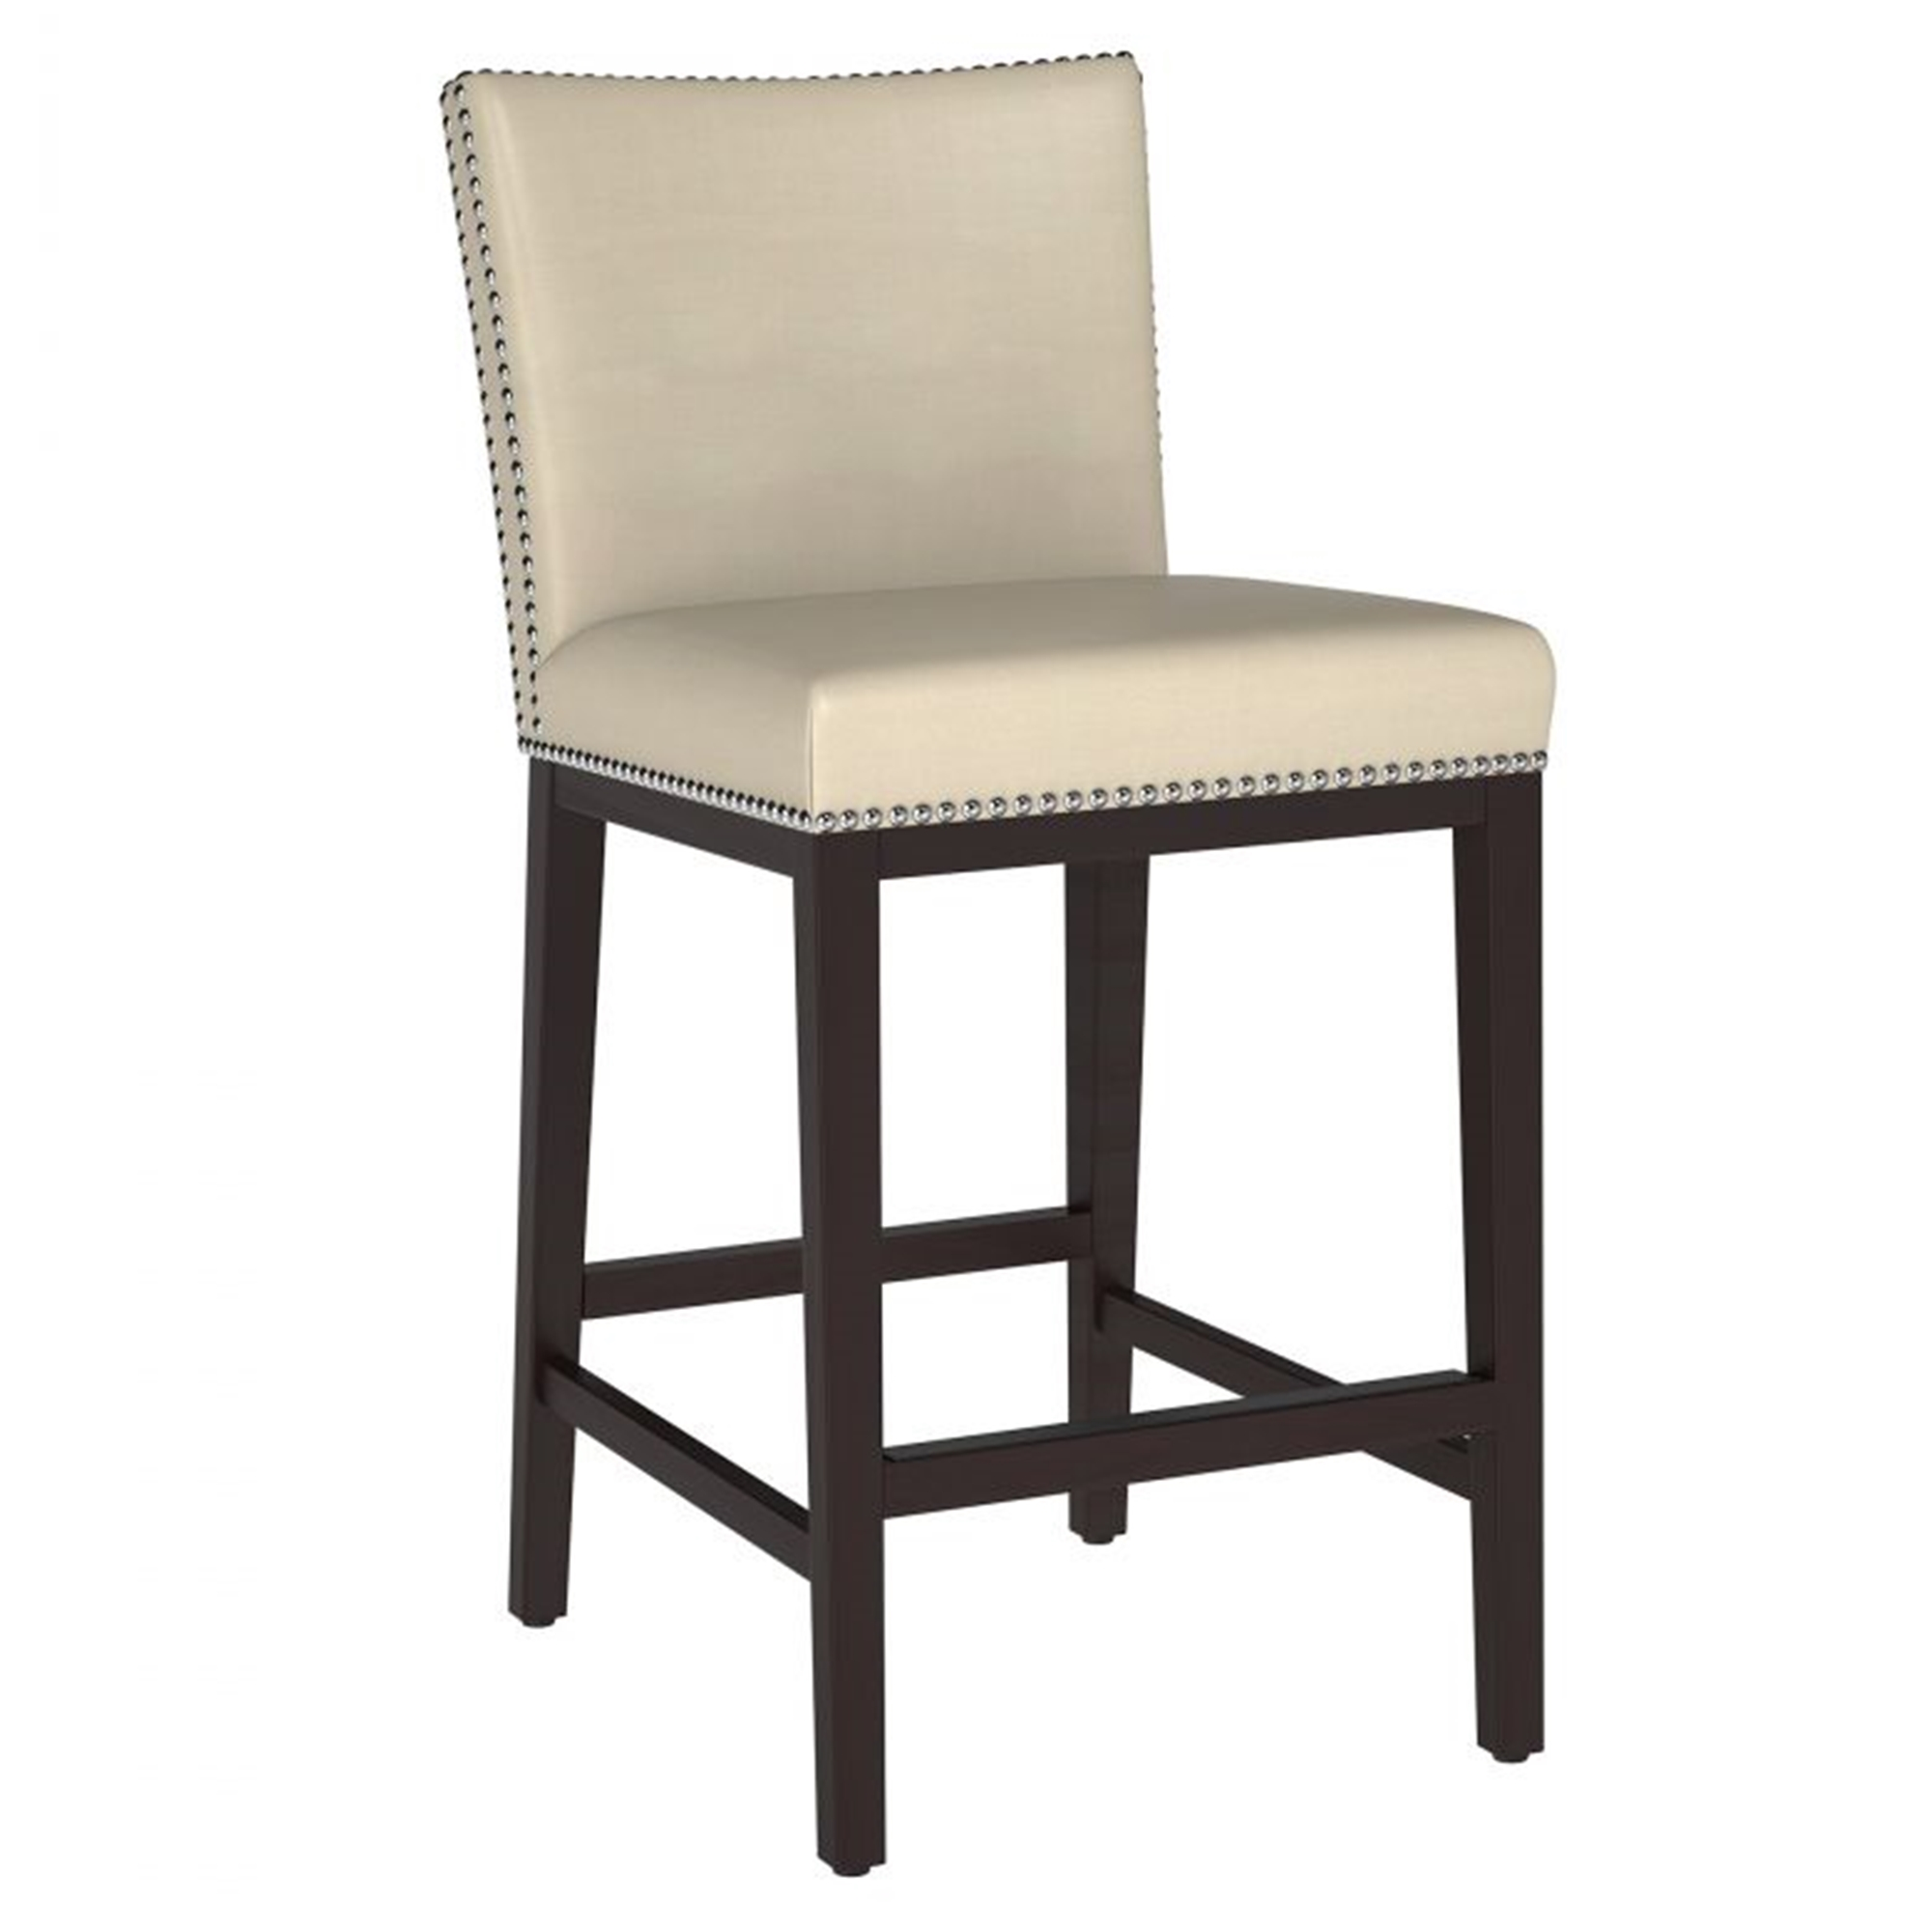 Cream Kitchen Island Bar Counter Stool with Silver Nails